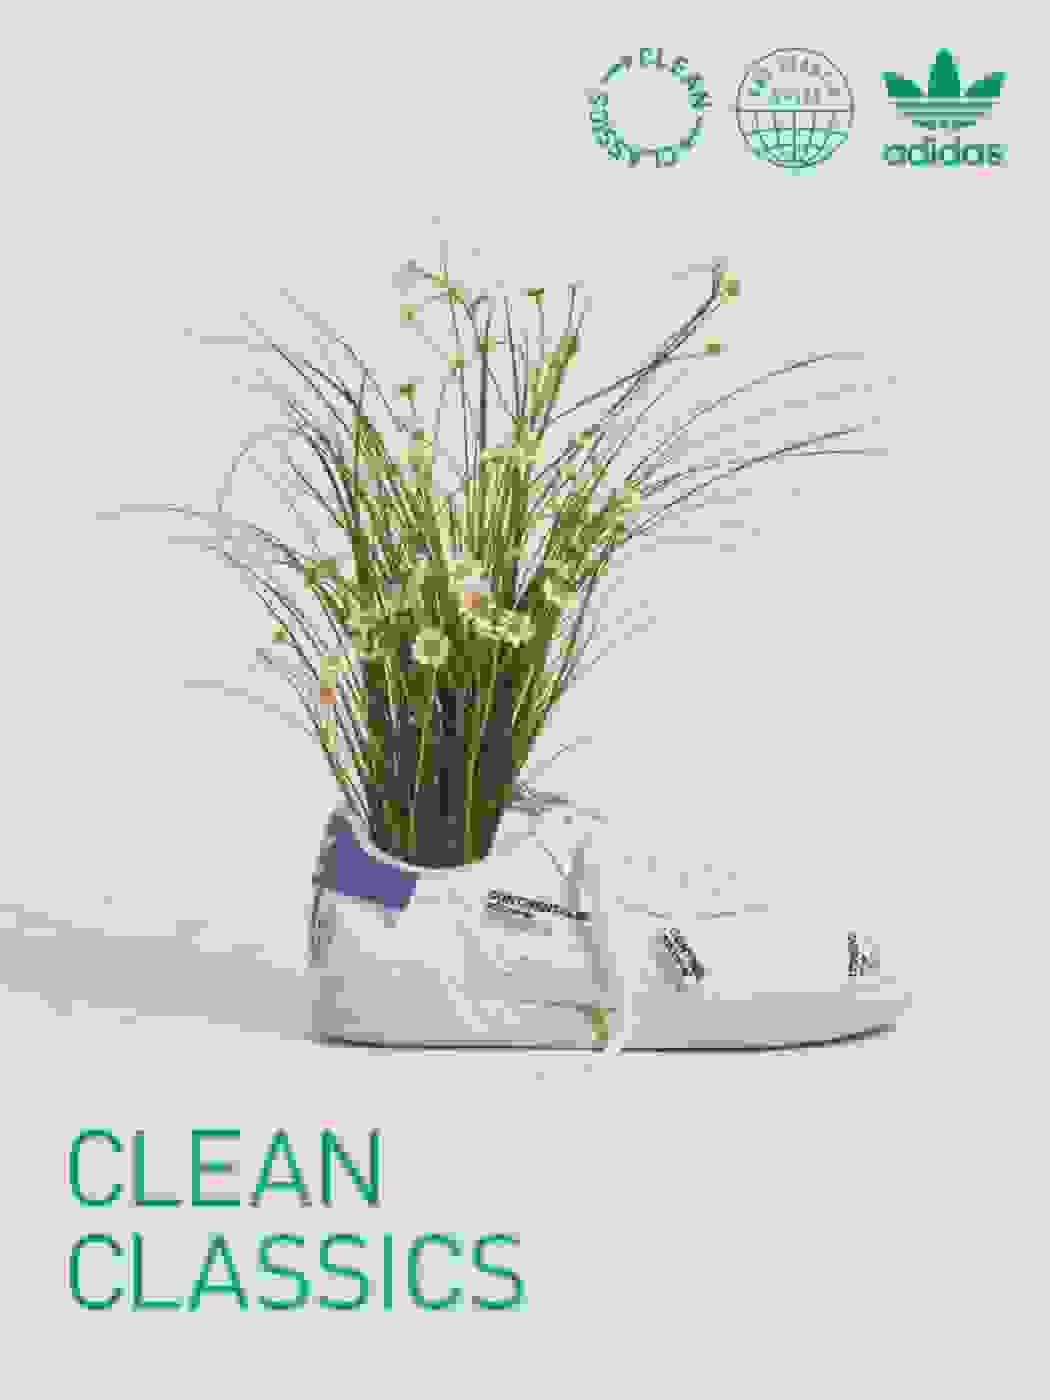 A Continental 80 sneaker from the Clean Classics collection is filled with a bouquet of white wildflowers.